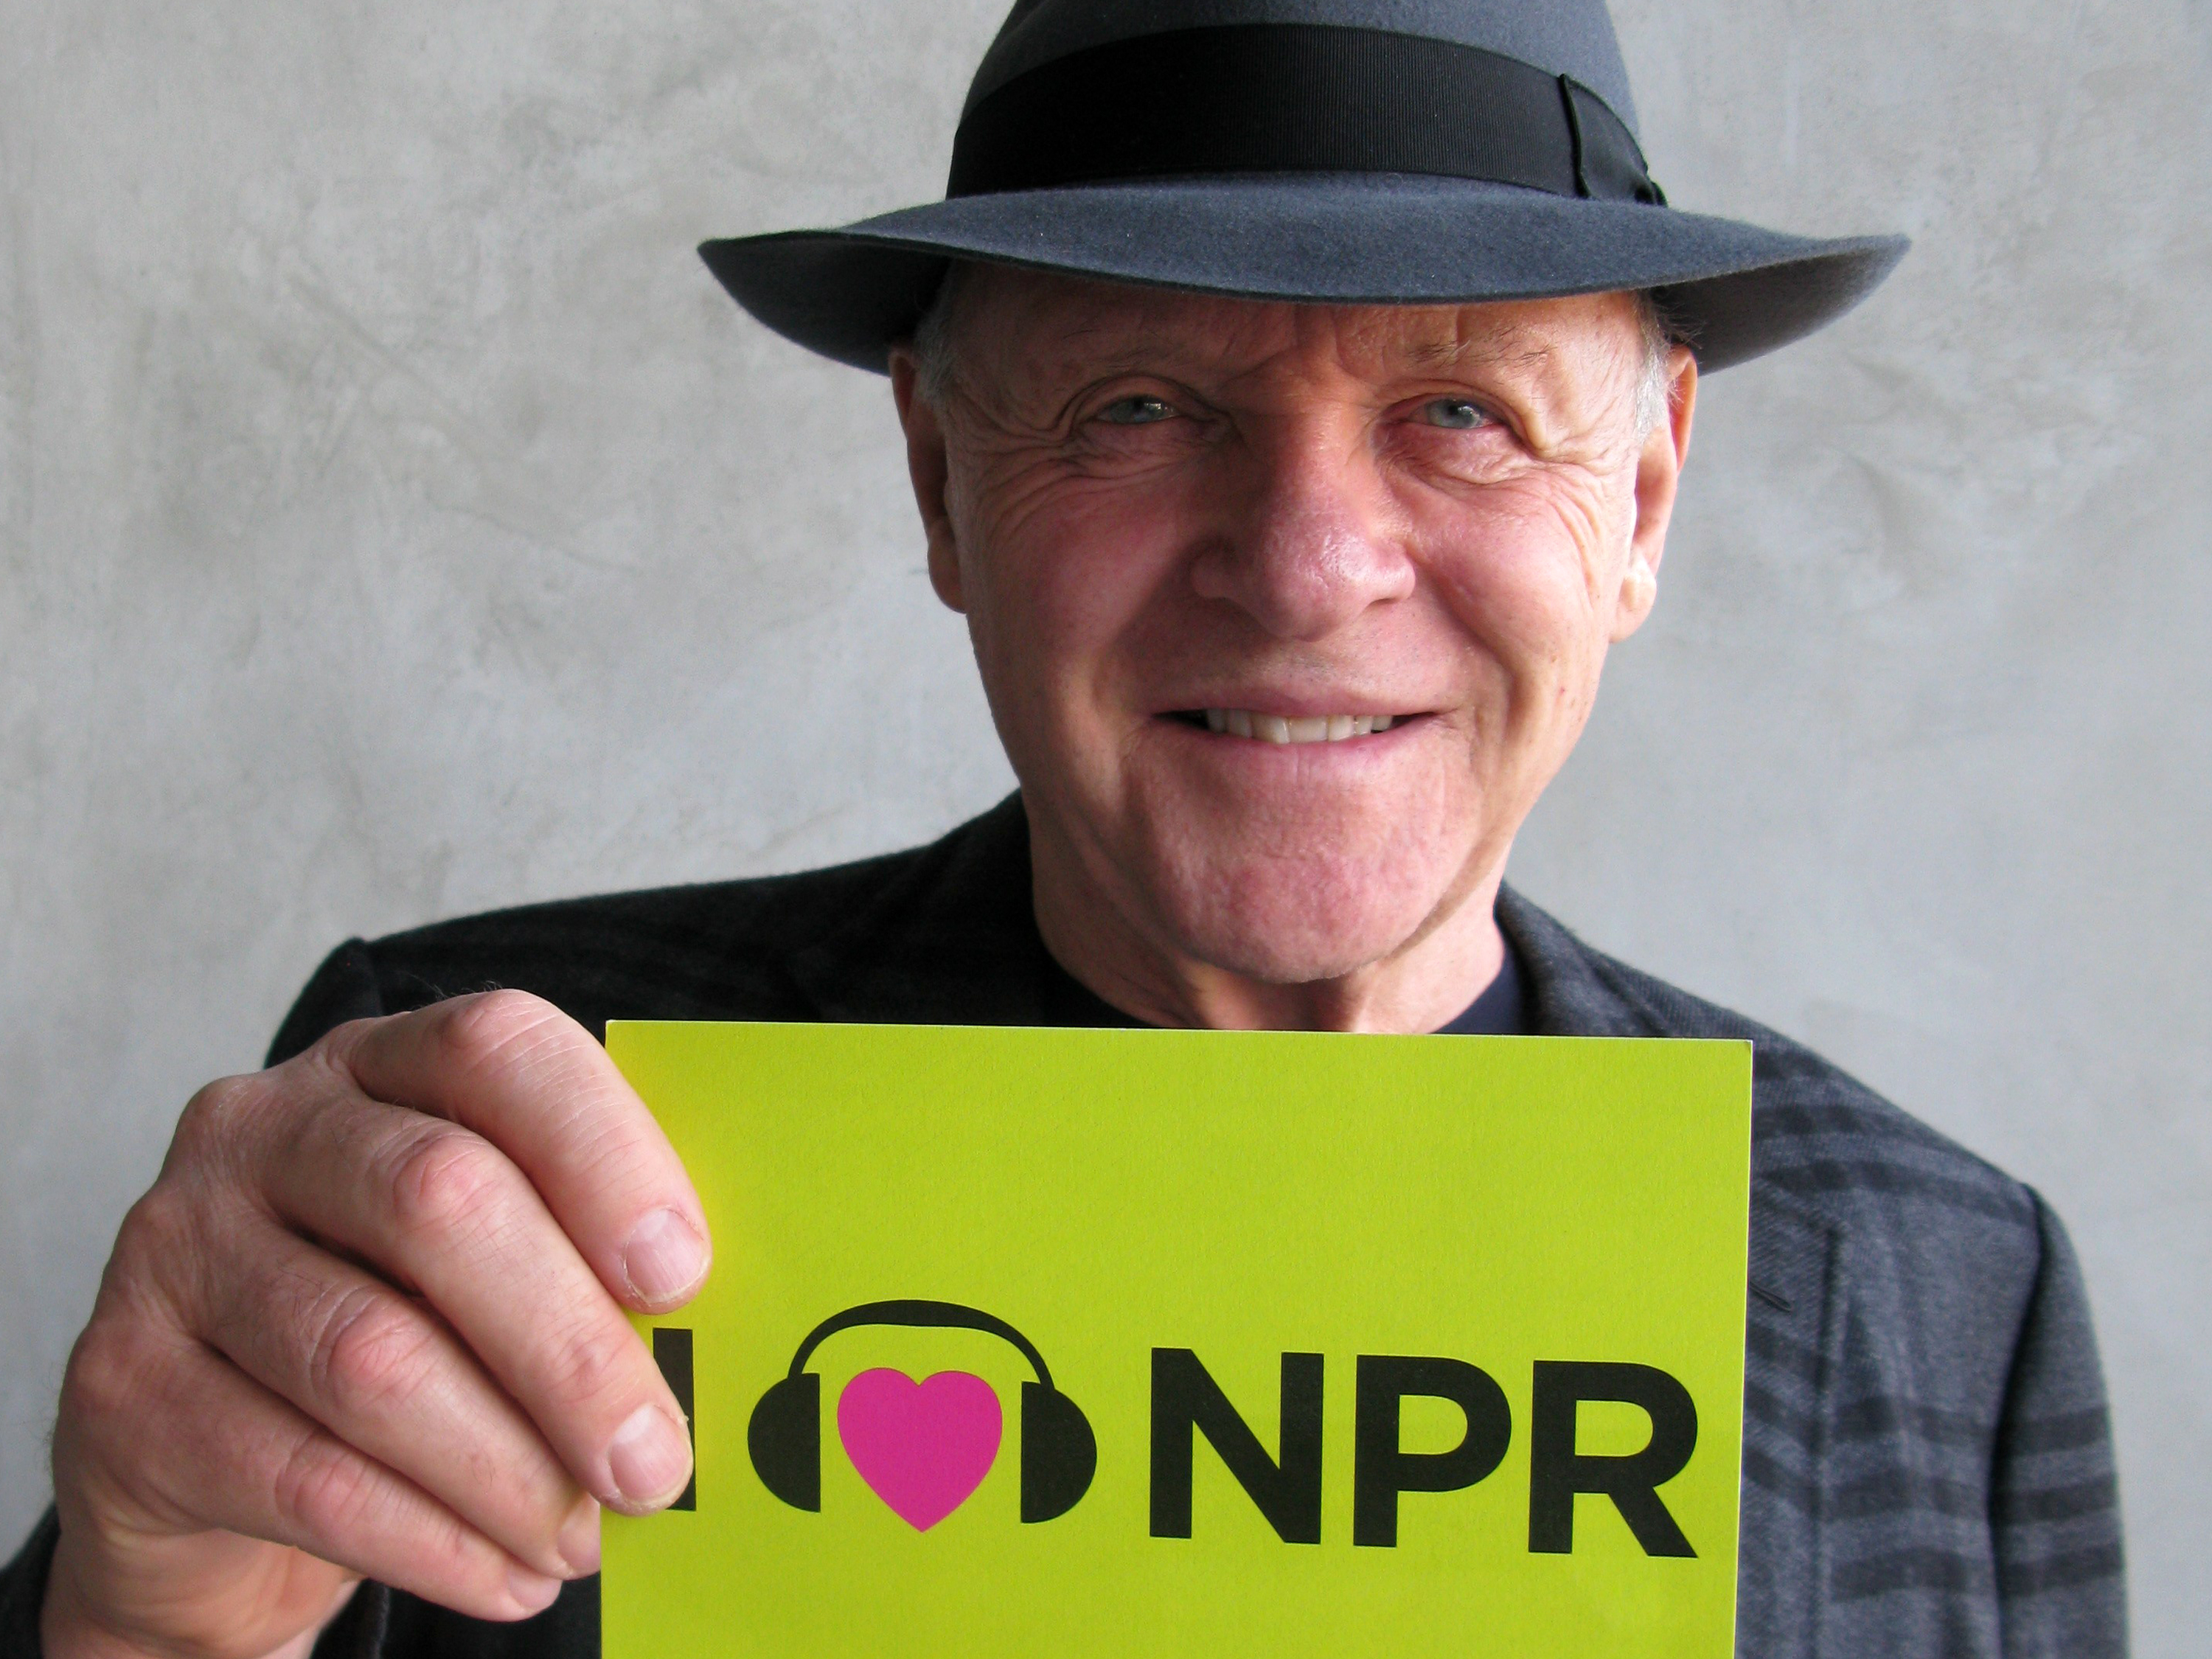 Anthony Hopkins takes on the role of legendary filmmaker Alfred Hitchcock in Hitchcock, nominated for makeup and hairstyling. The actor talked to NPR Host Scott Simon on Weekend Edition last year, and couldn't leave without sharing the love.